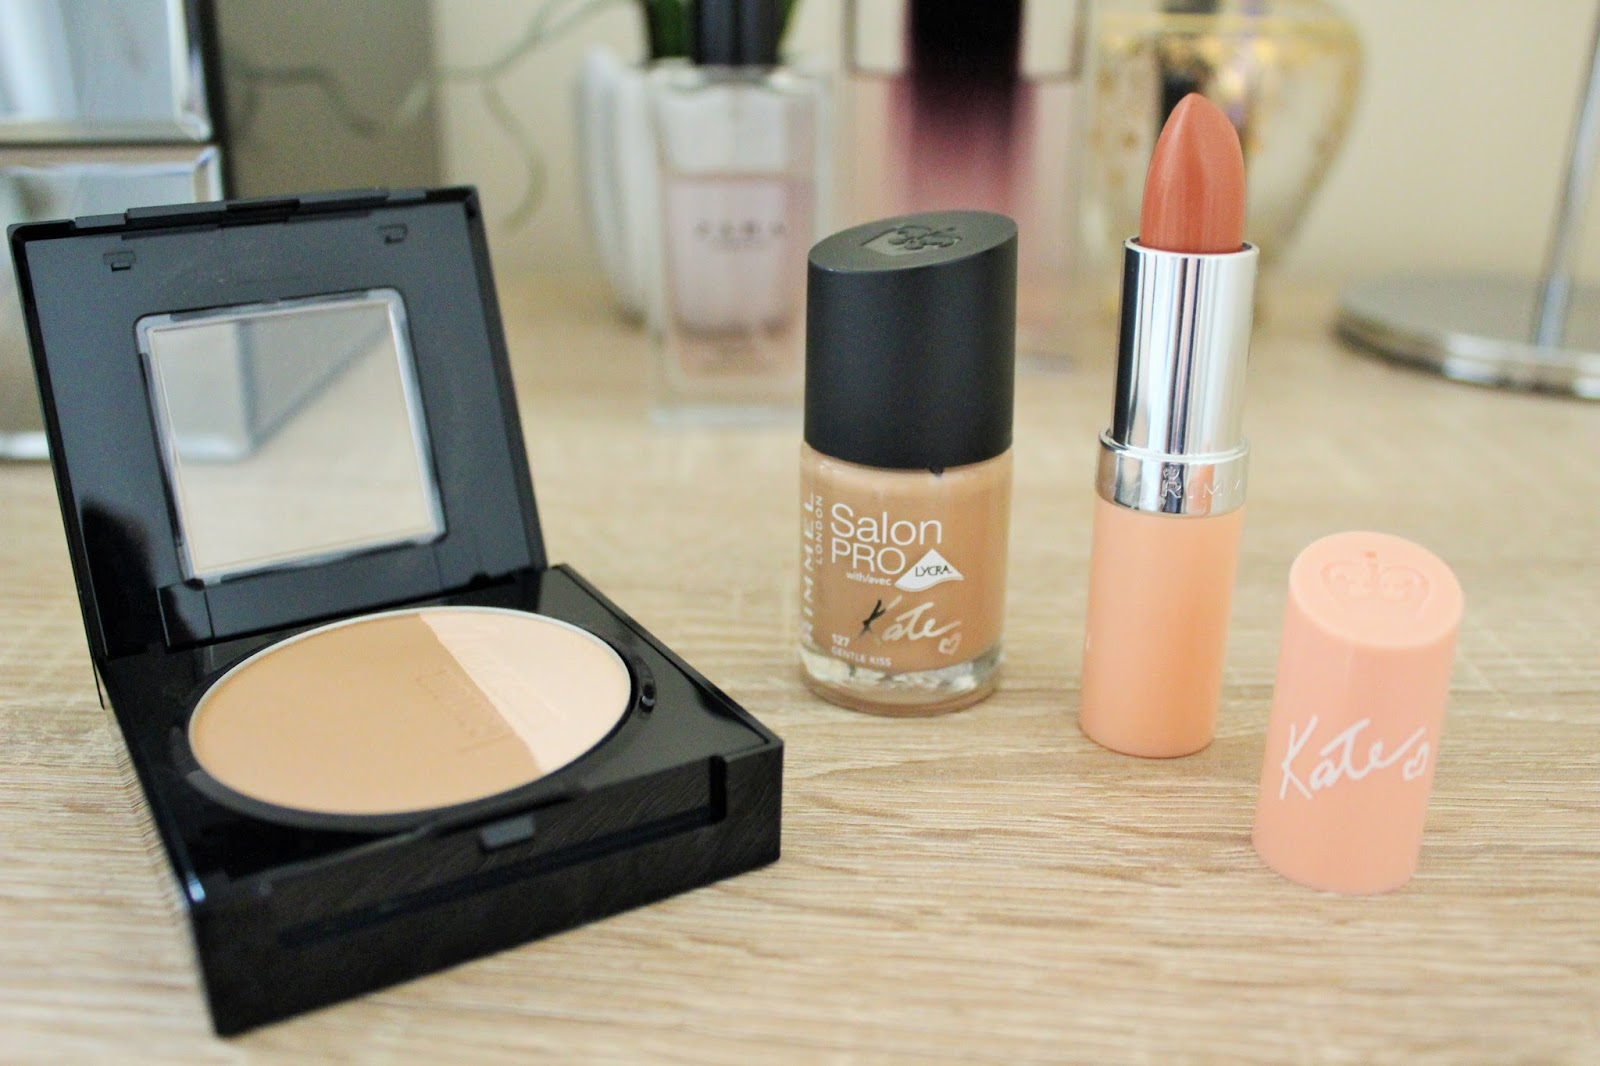 Maybelline Master Sculpt, Rimmel Kate Nude Lipstick in 43, Rimmel Kate Nude Nails in 127 Gentle Kiss